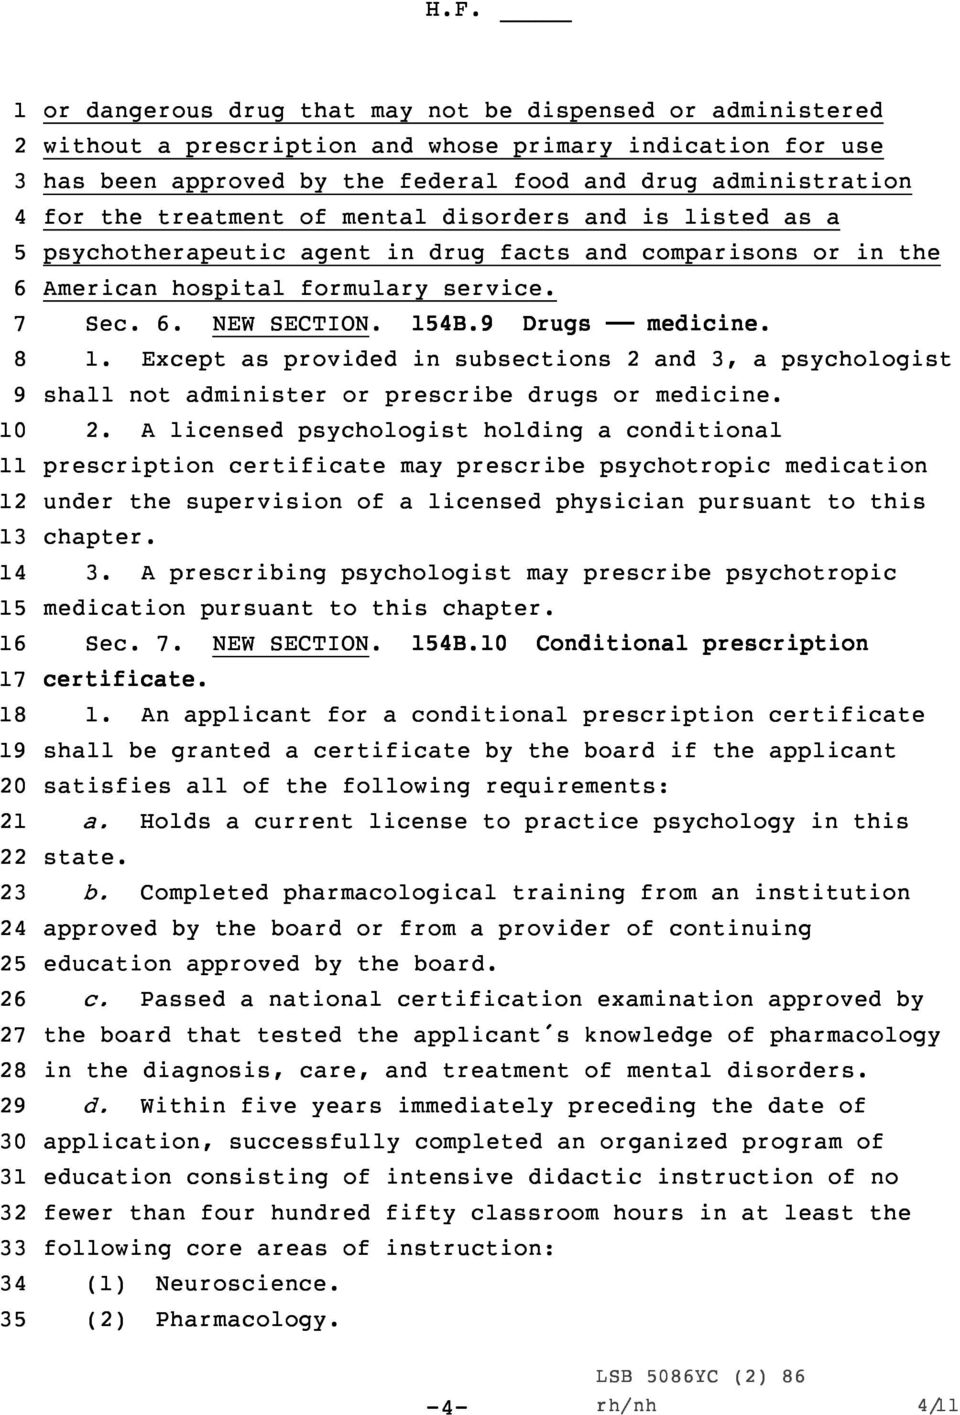 . Except as provided in subsections and, a psychologist shall not administer or prescribe drugs or medicine.